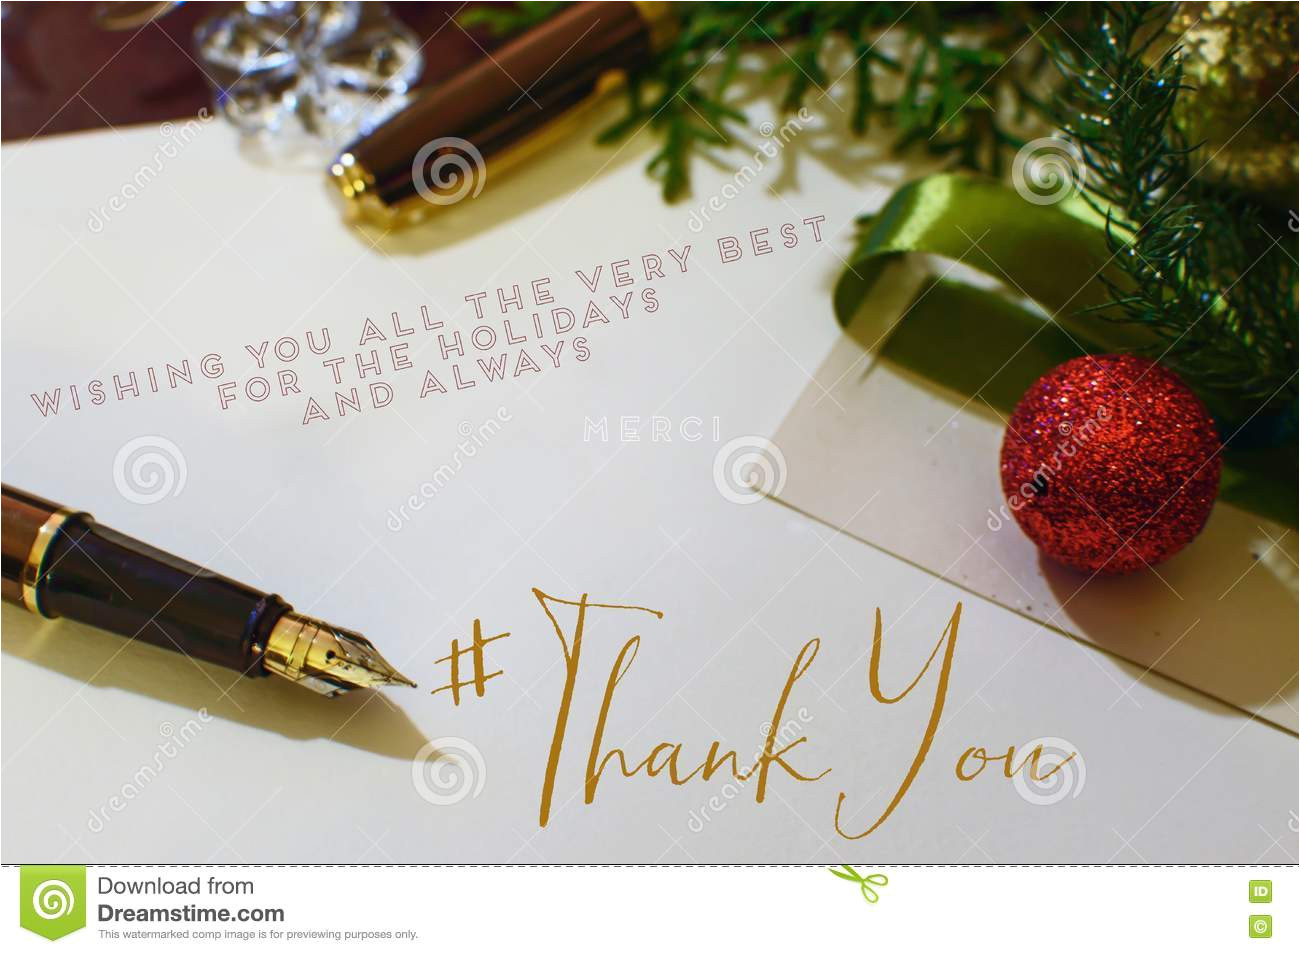 christmas thank you card gold fountain pen desk ornaments evergreen tree gold crystal writing notes end 82670901 jpg